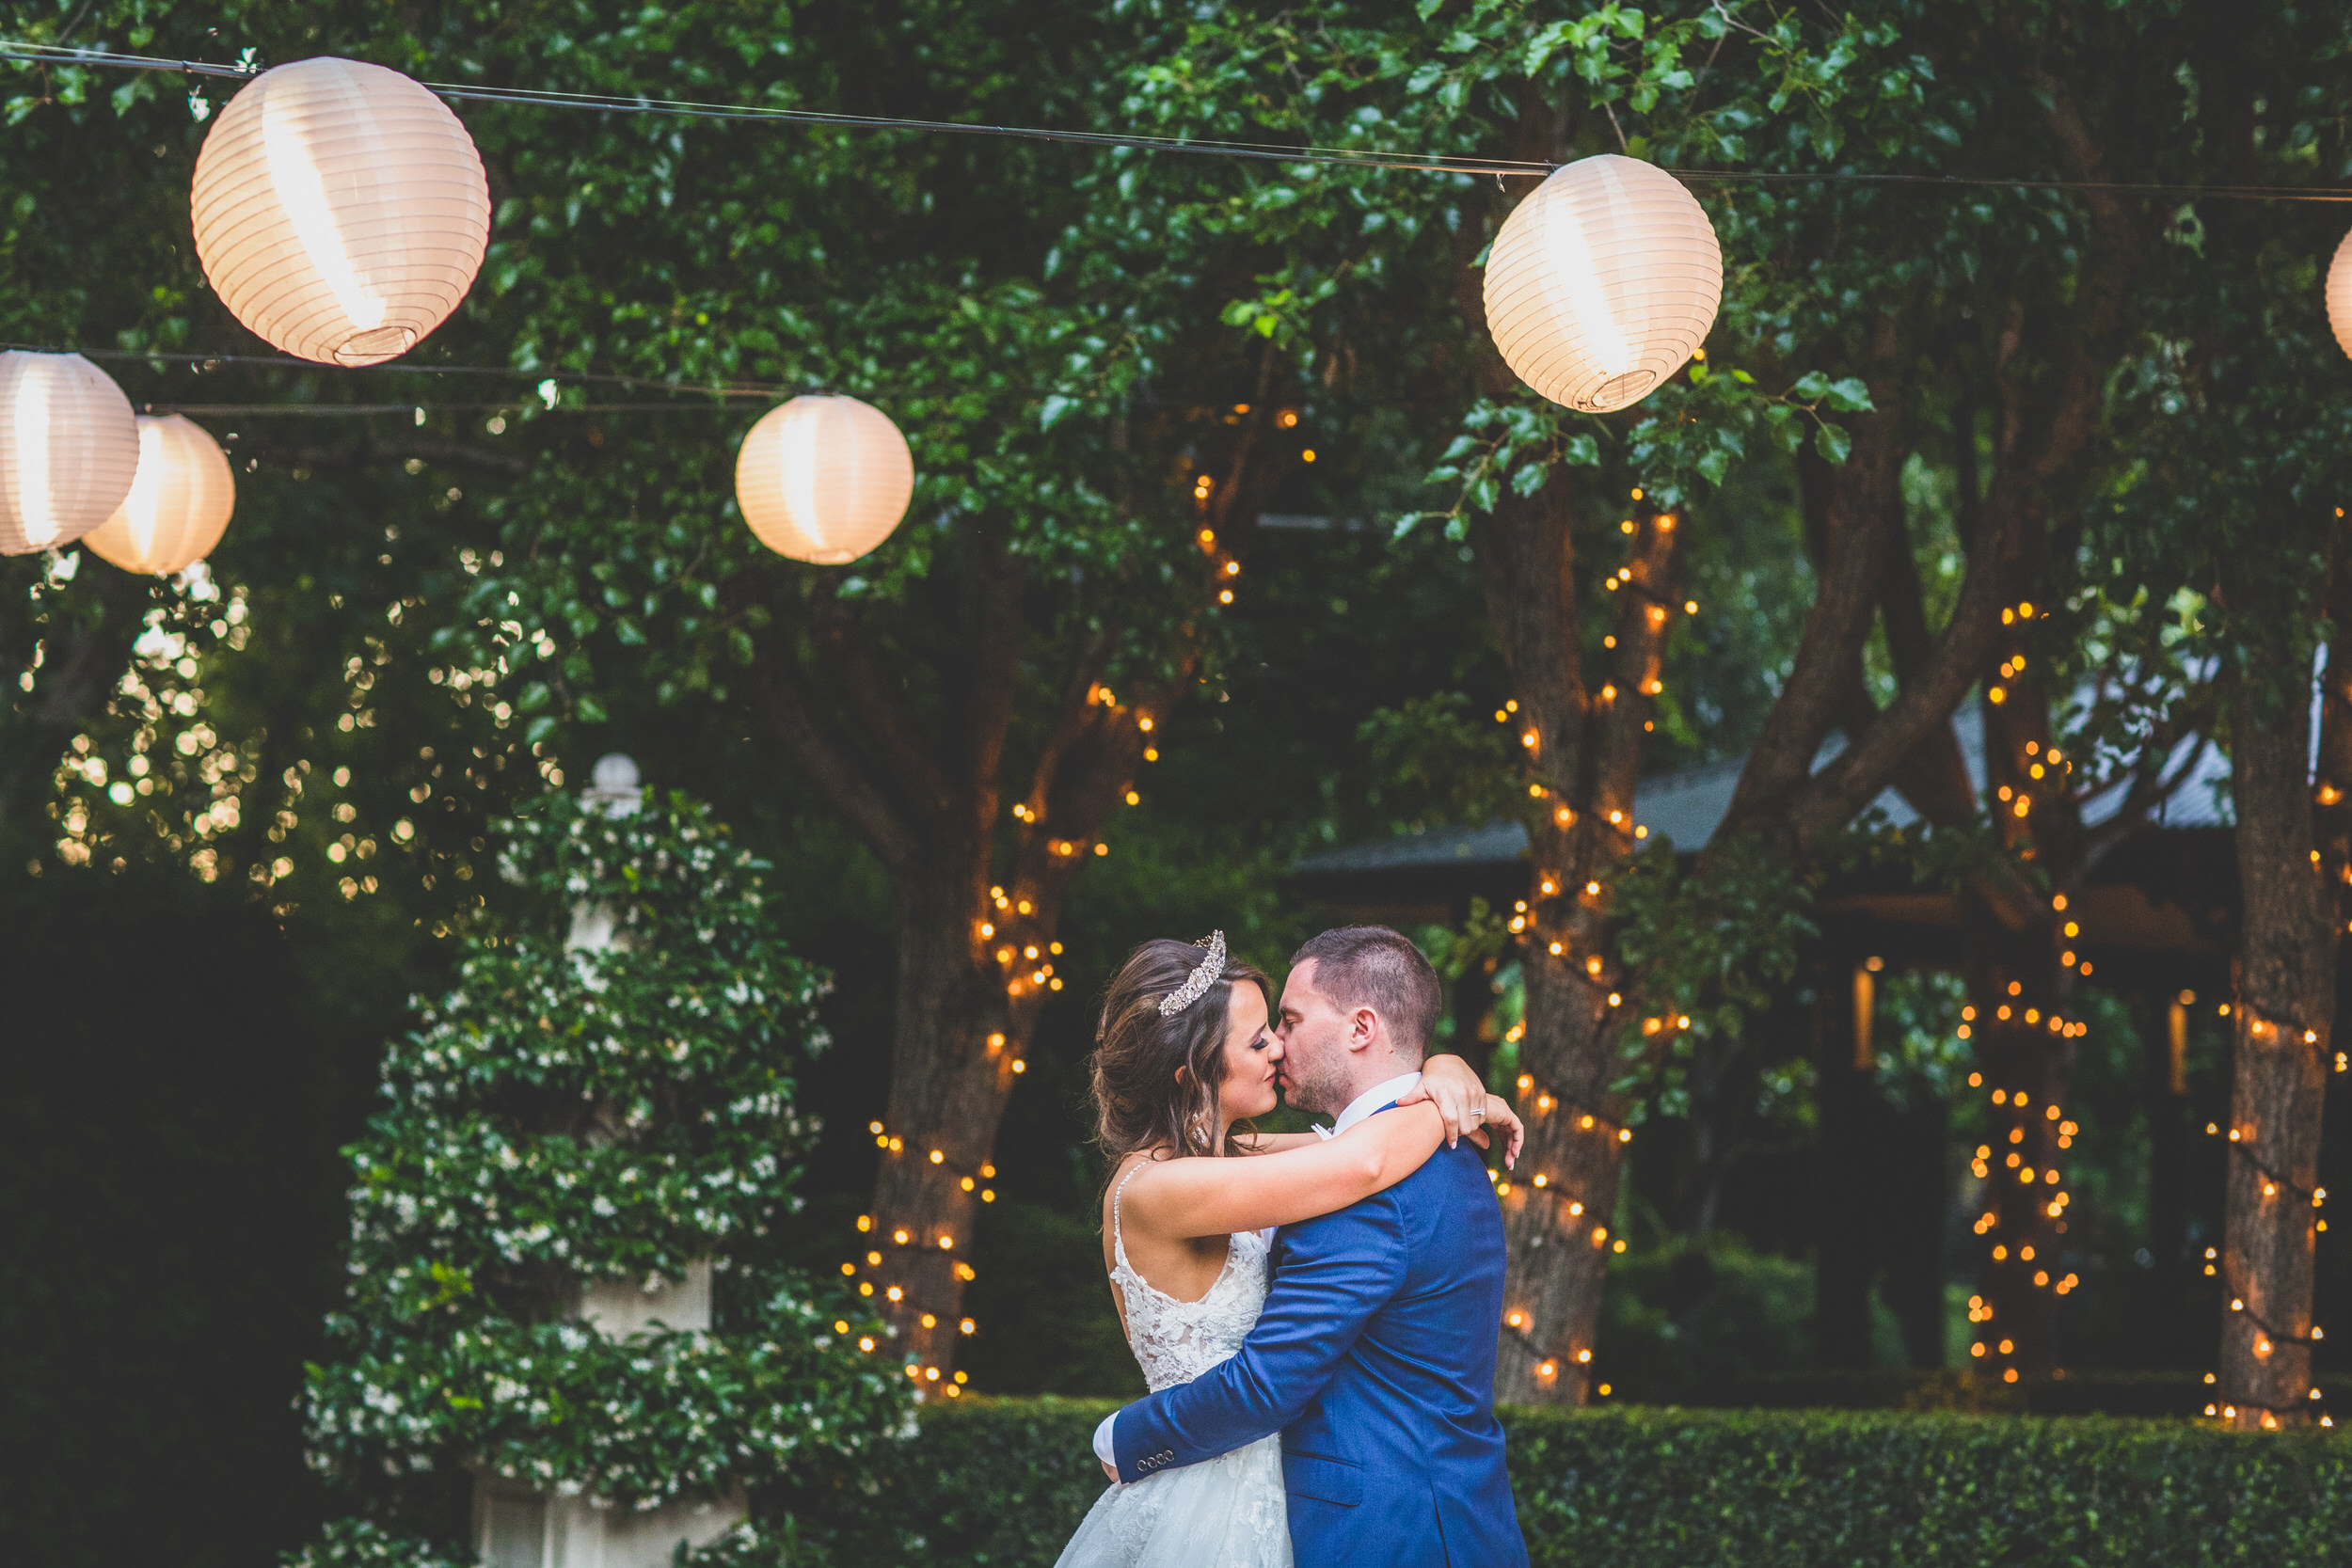 The bride and groom kissing under the lanterns, surrounded by fairy lights at Jaspers in Berry